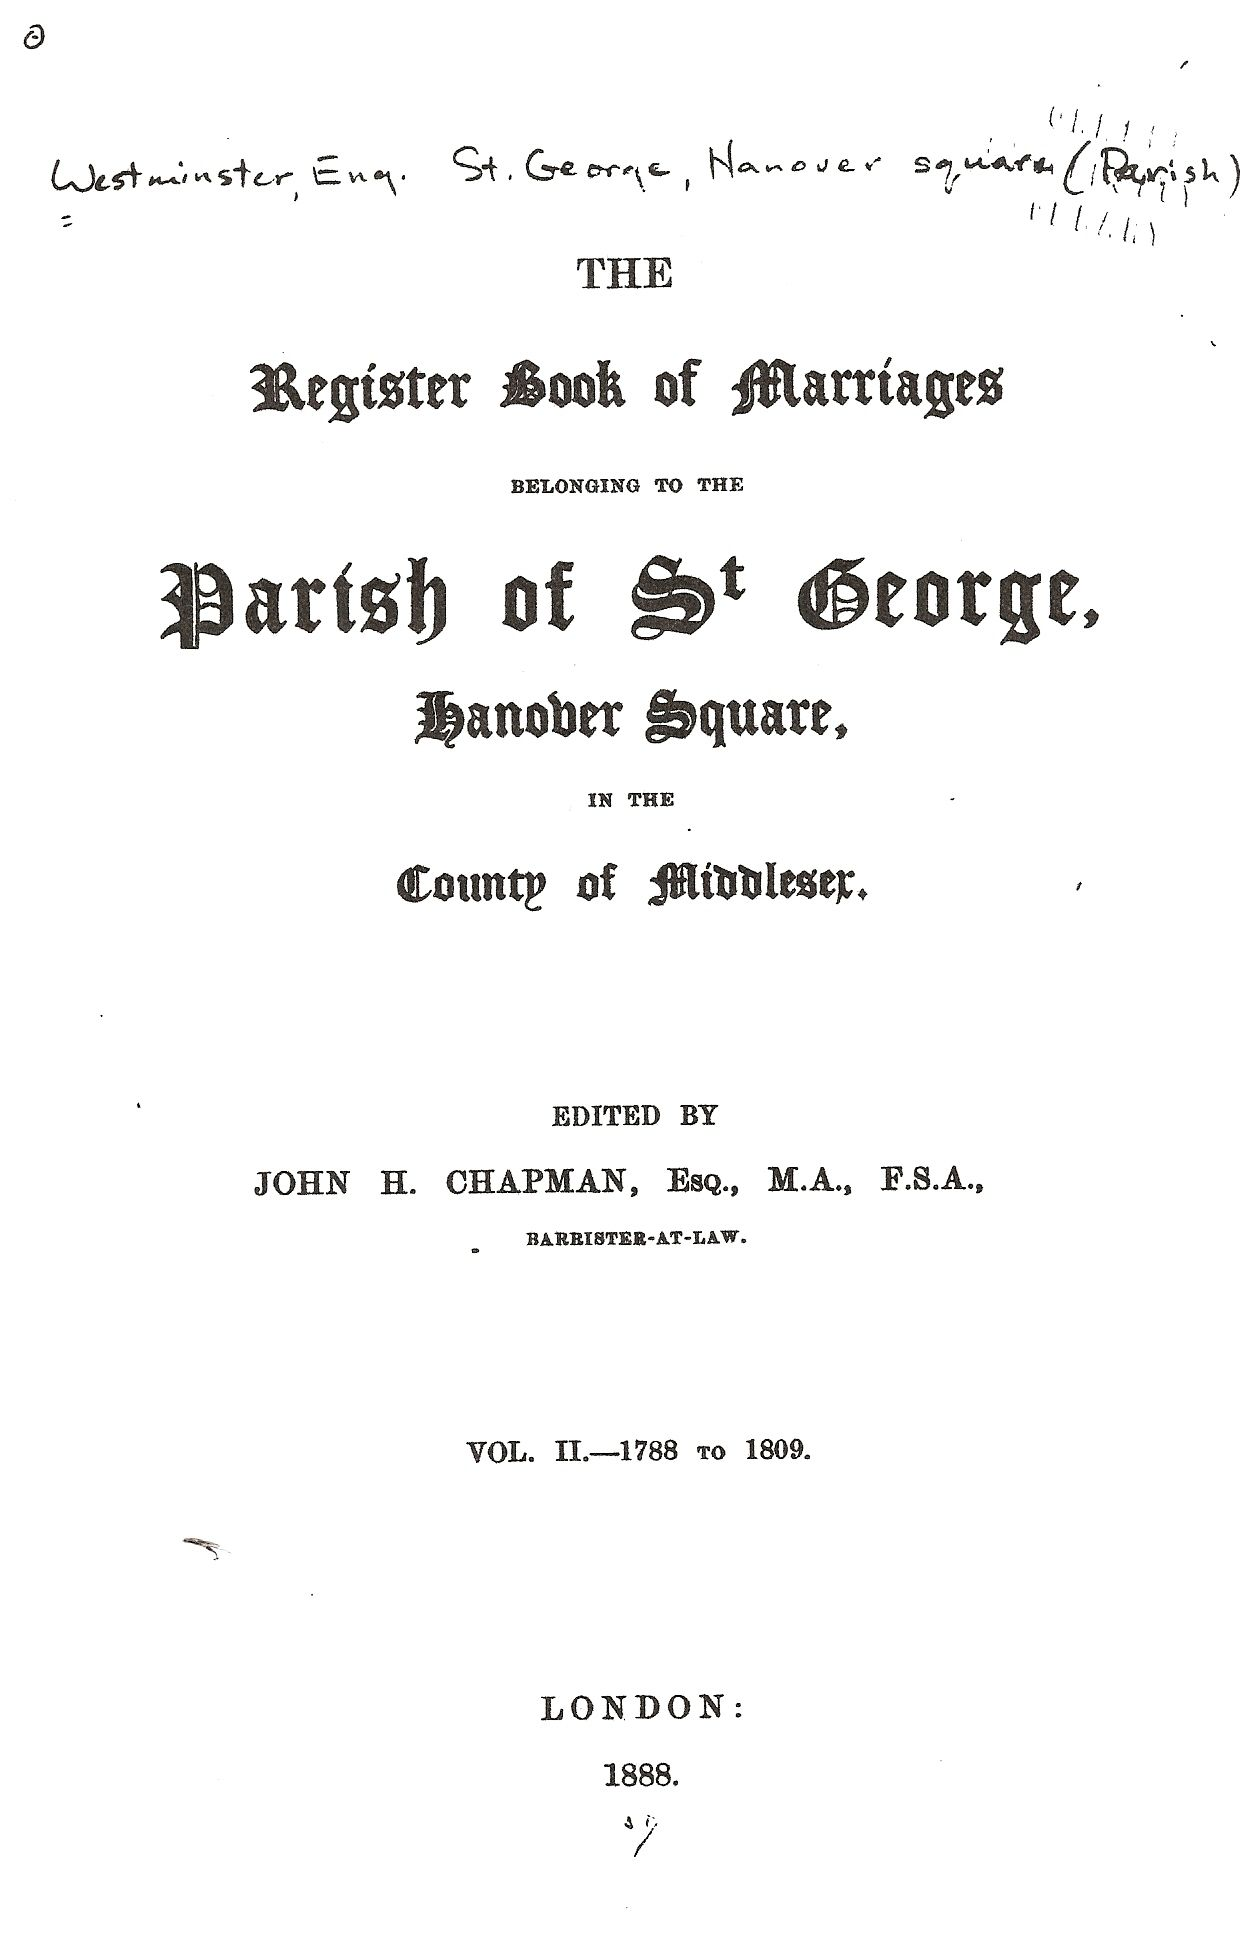 The Register Book of Marriages Belonging to the Parish of St. George, Hanover Square in the County of Middlesex. Vol II, 1788 to 1809